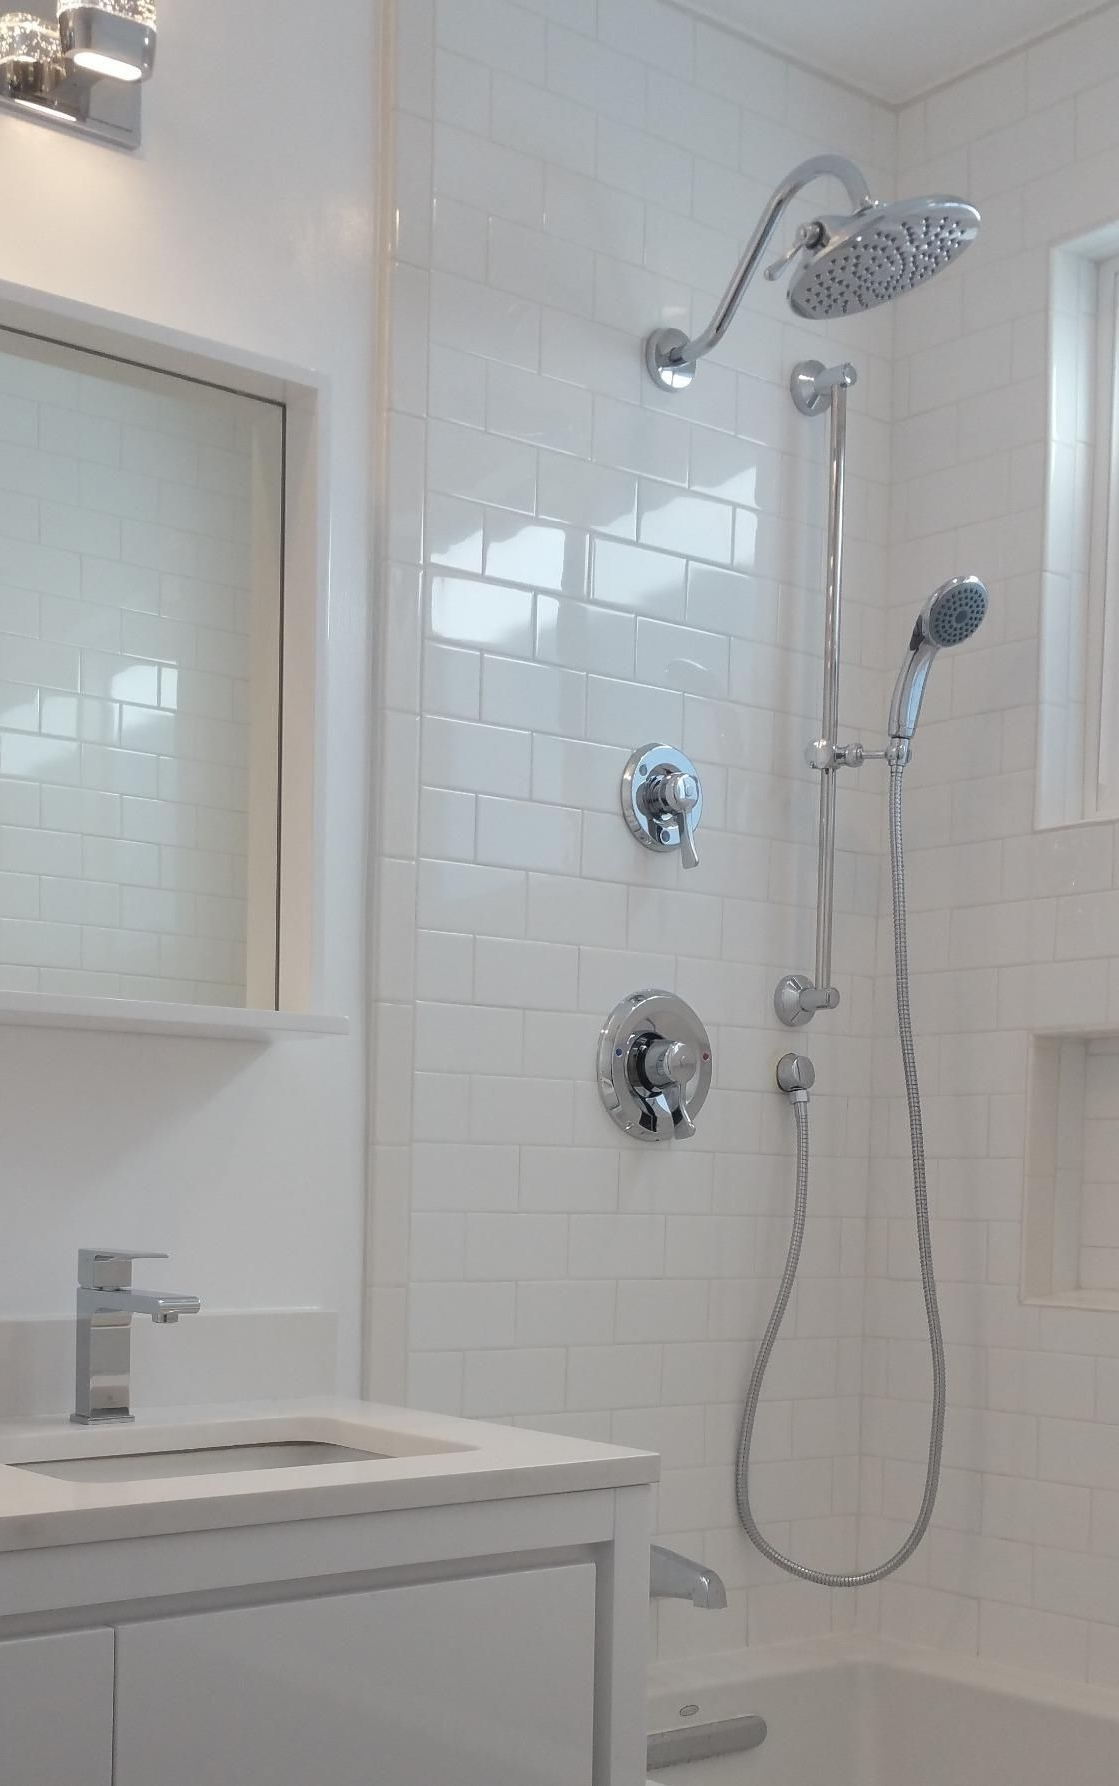 The Moen Commercial Two Handle Transfer Tub Shower With 10+ Moen Bathroom Design Ideas